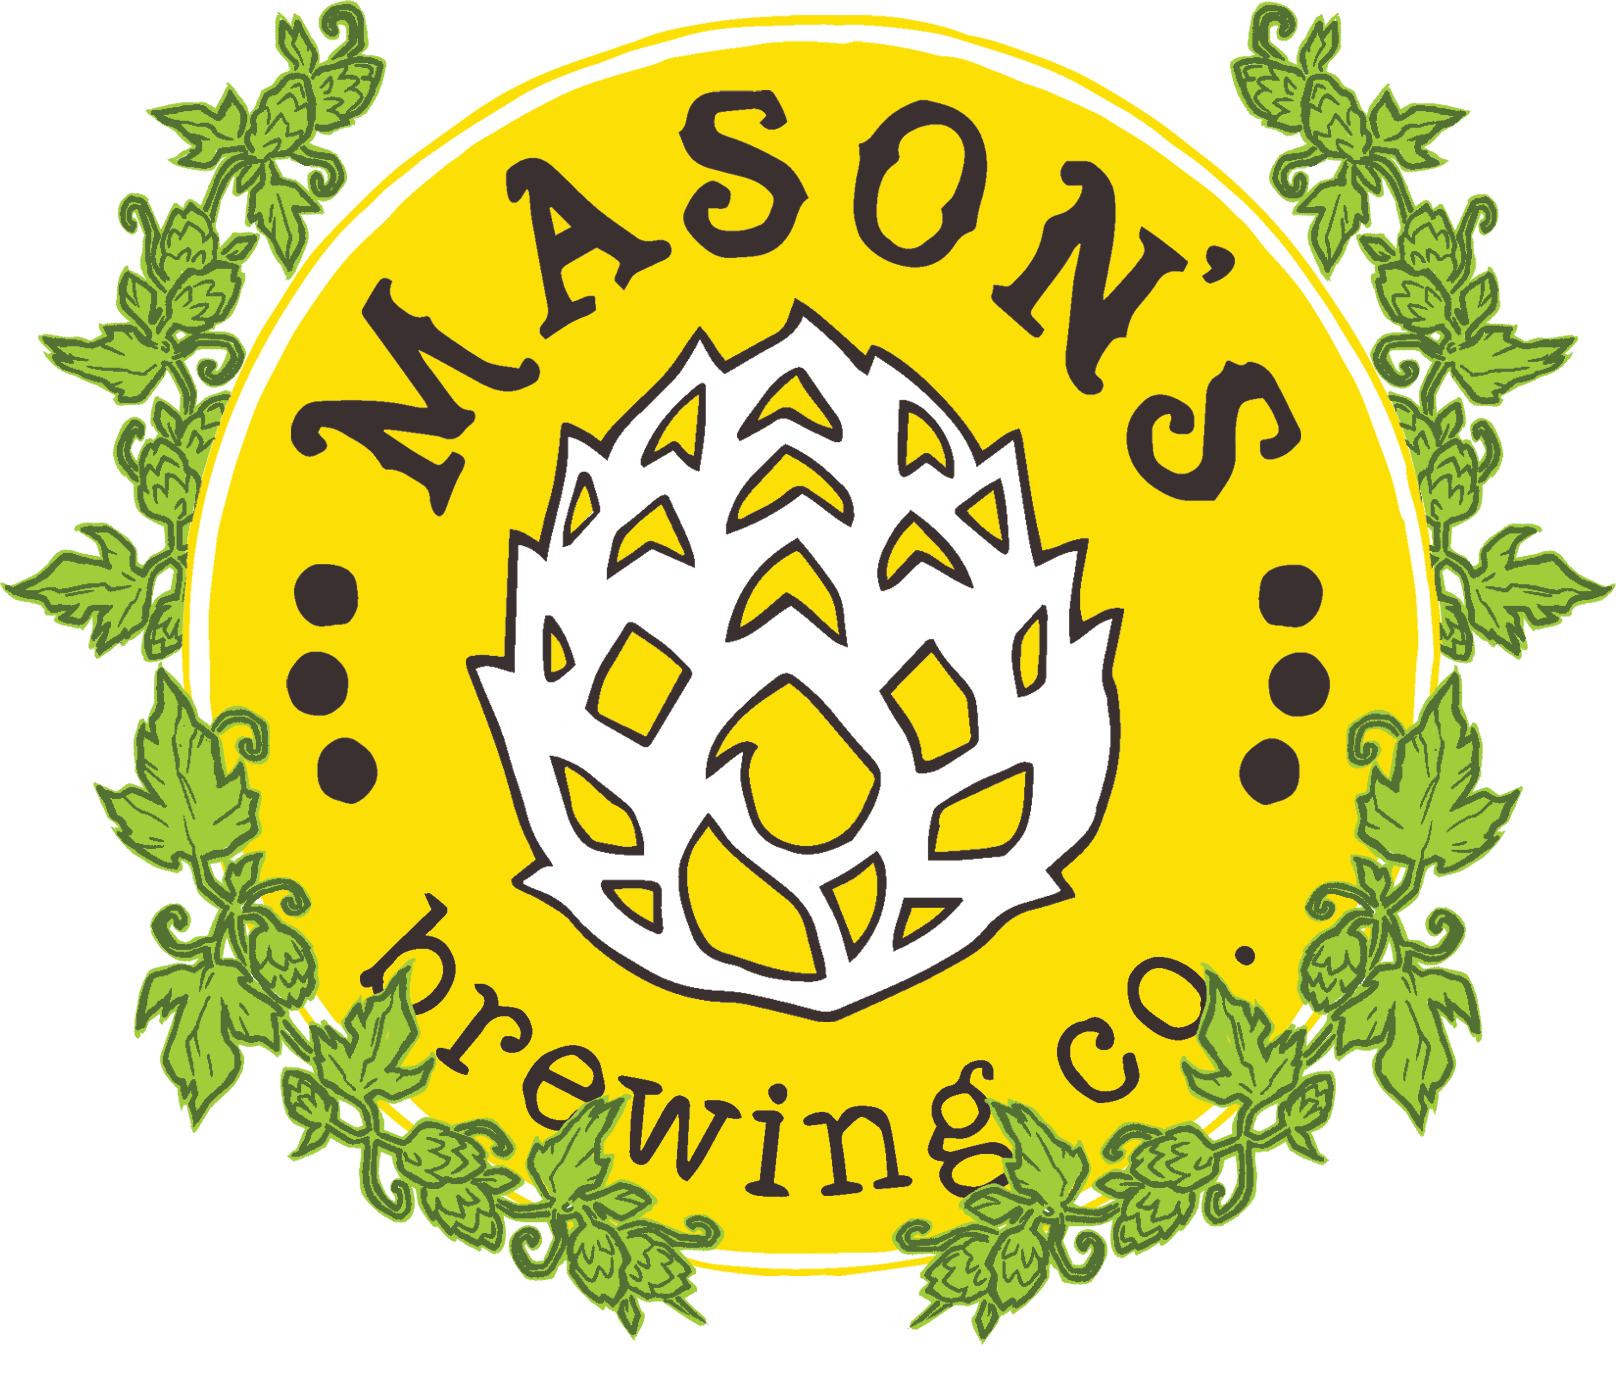 https://masonsbrewingcompany.com/wp-content/uploads/2017/12/masons-yellow-logo-193586.png